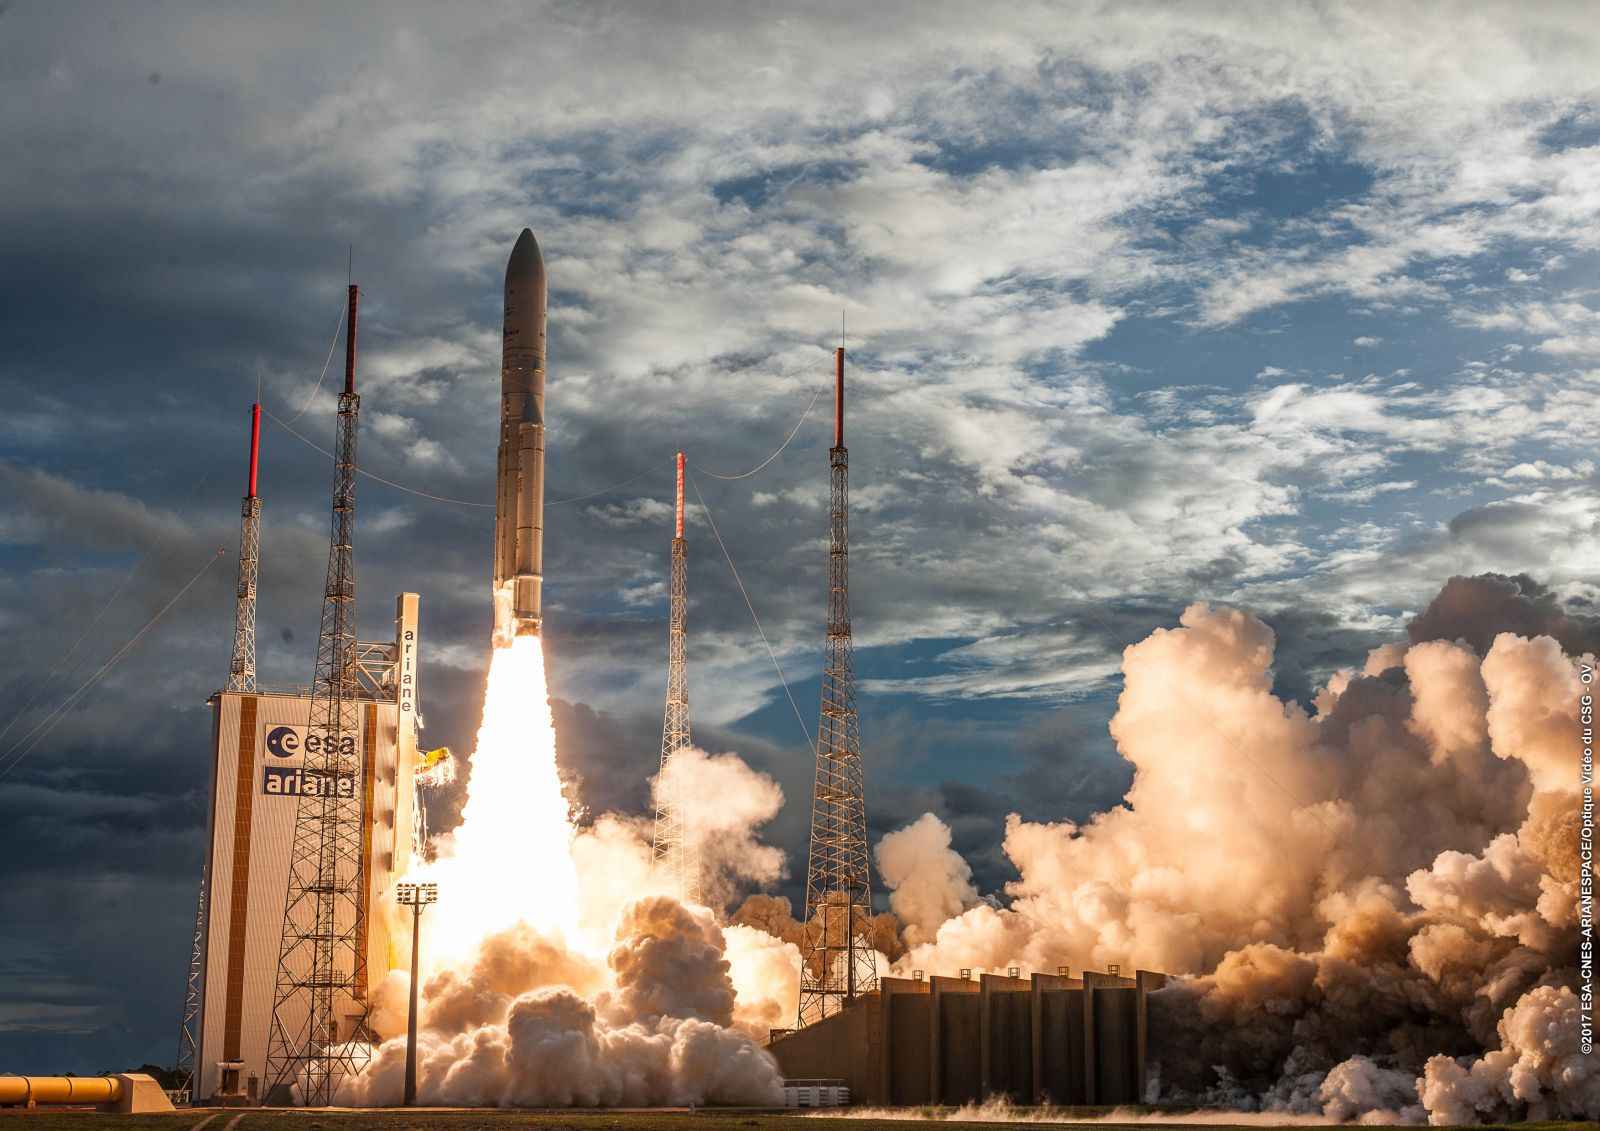 An Ariane 5 lifts off from Kourou, French GUiana. Photo Credit: Arianespace